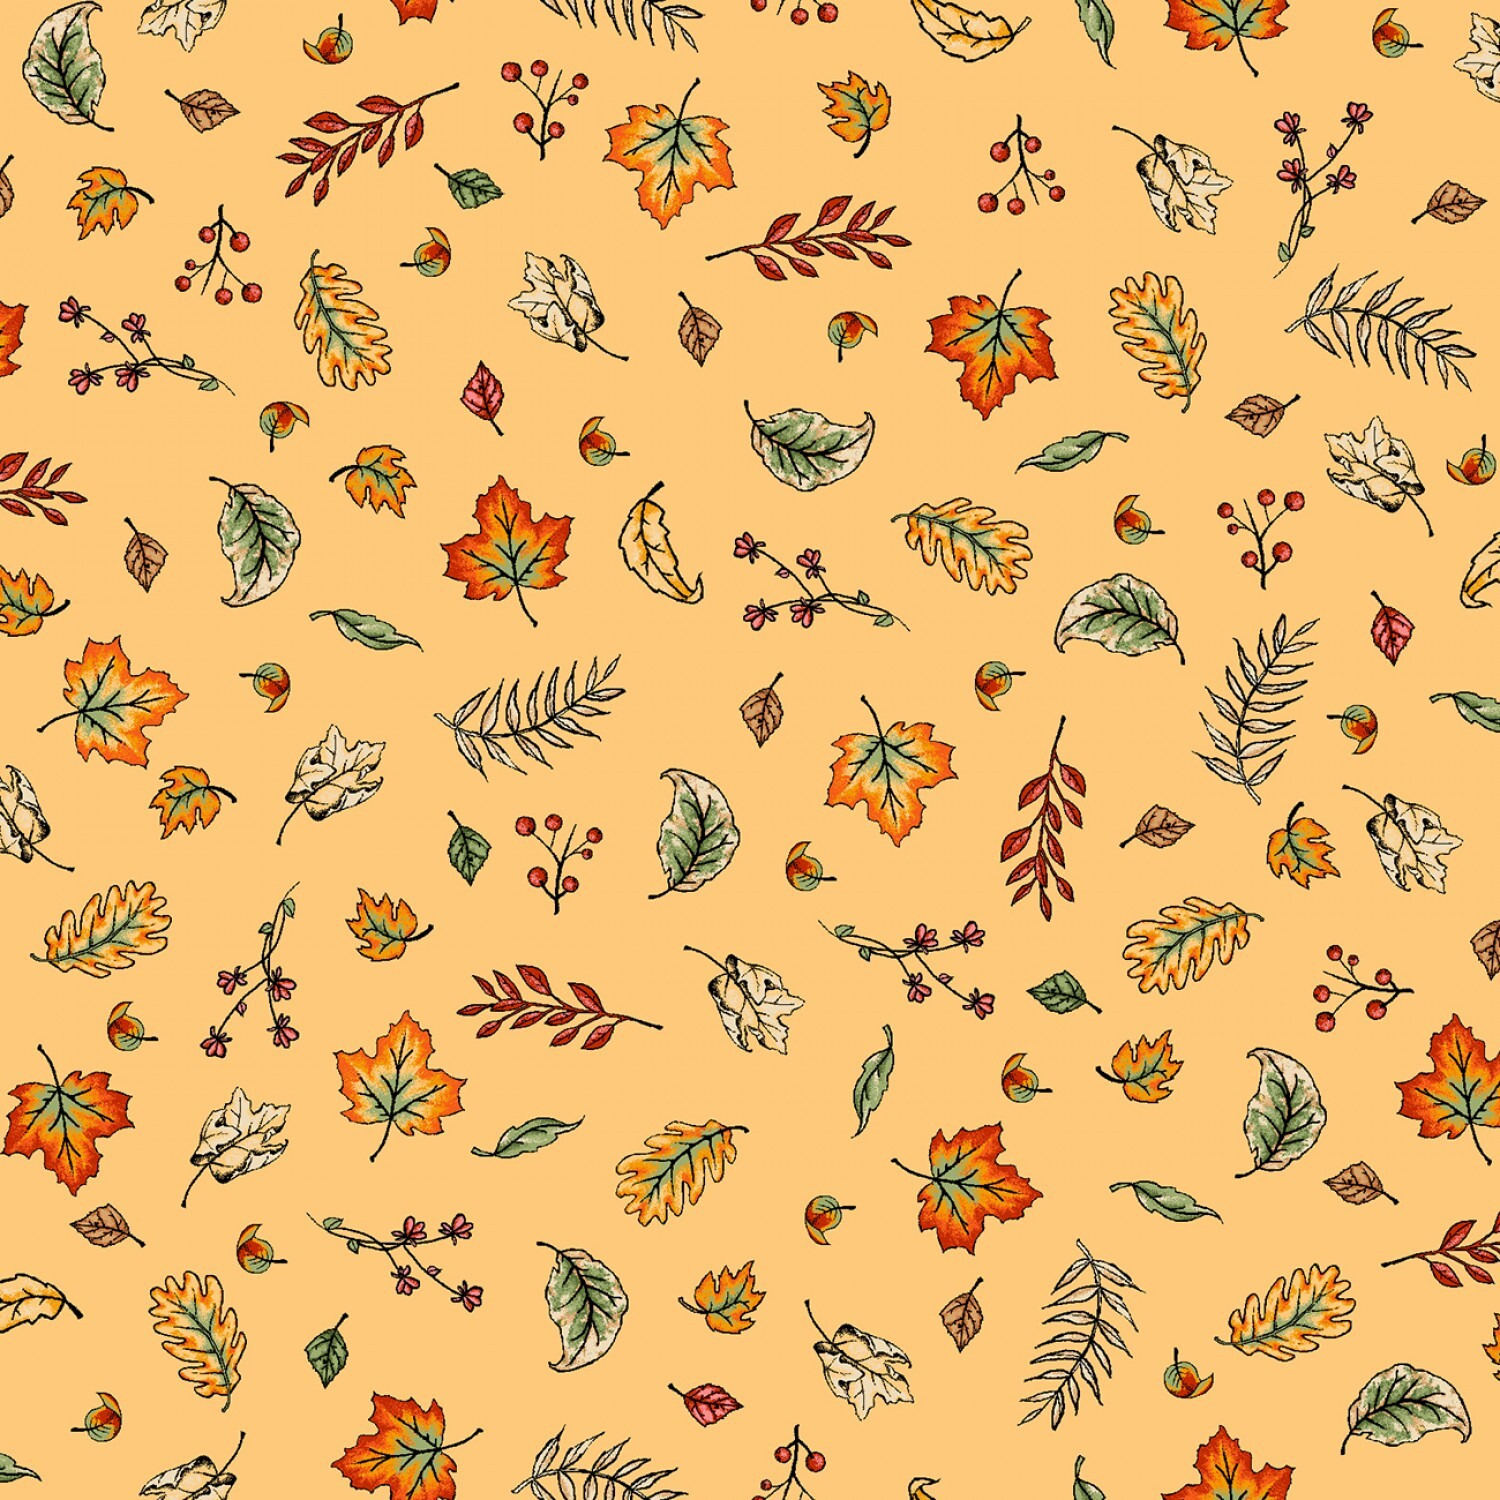 Sweater Weather - Yellow Blowing Leaves - 1/2m cut 57984